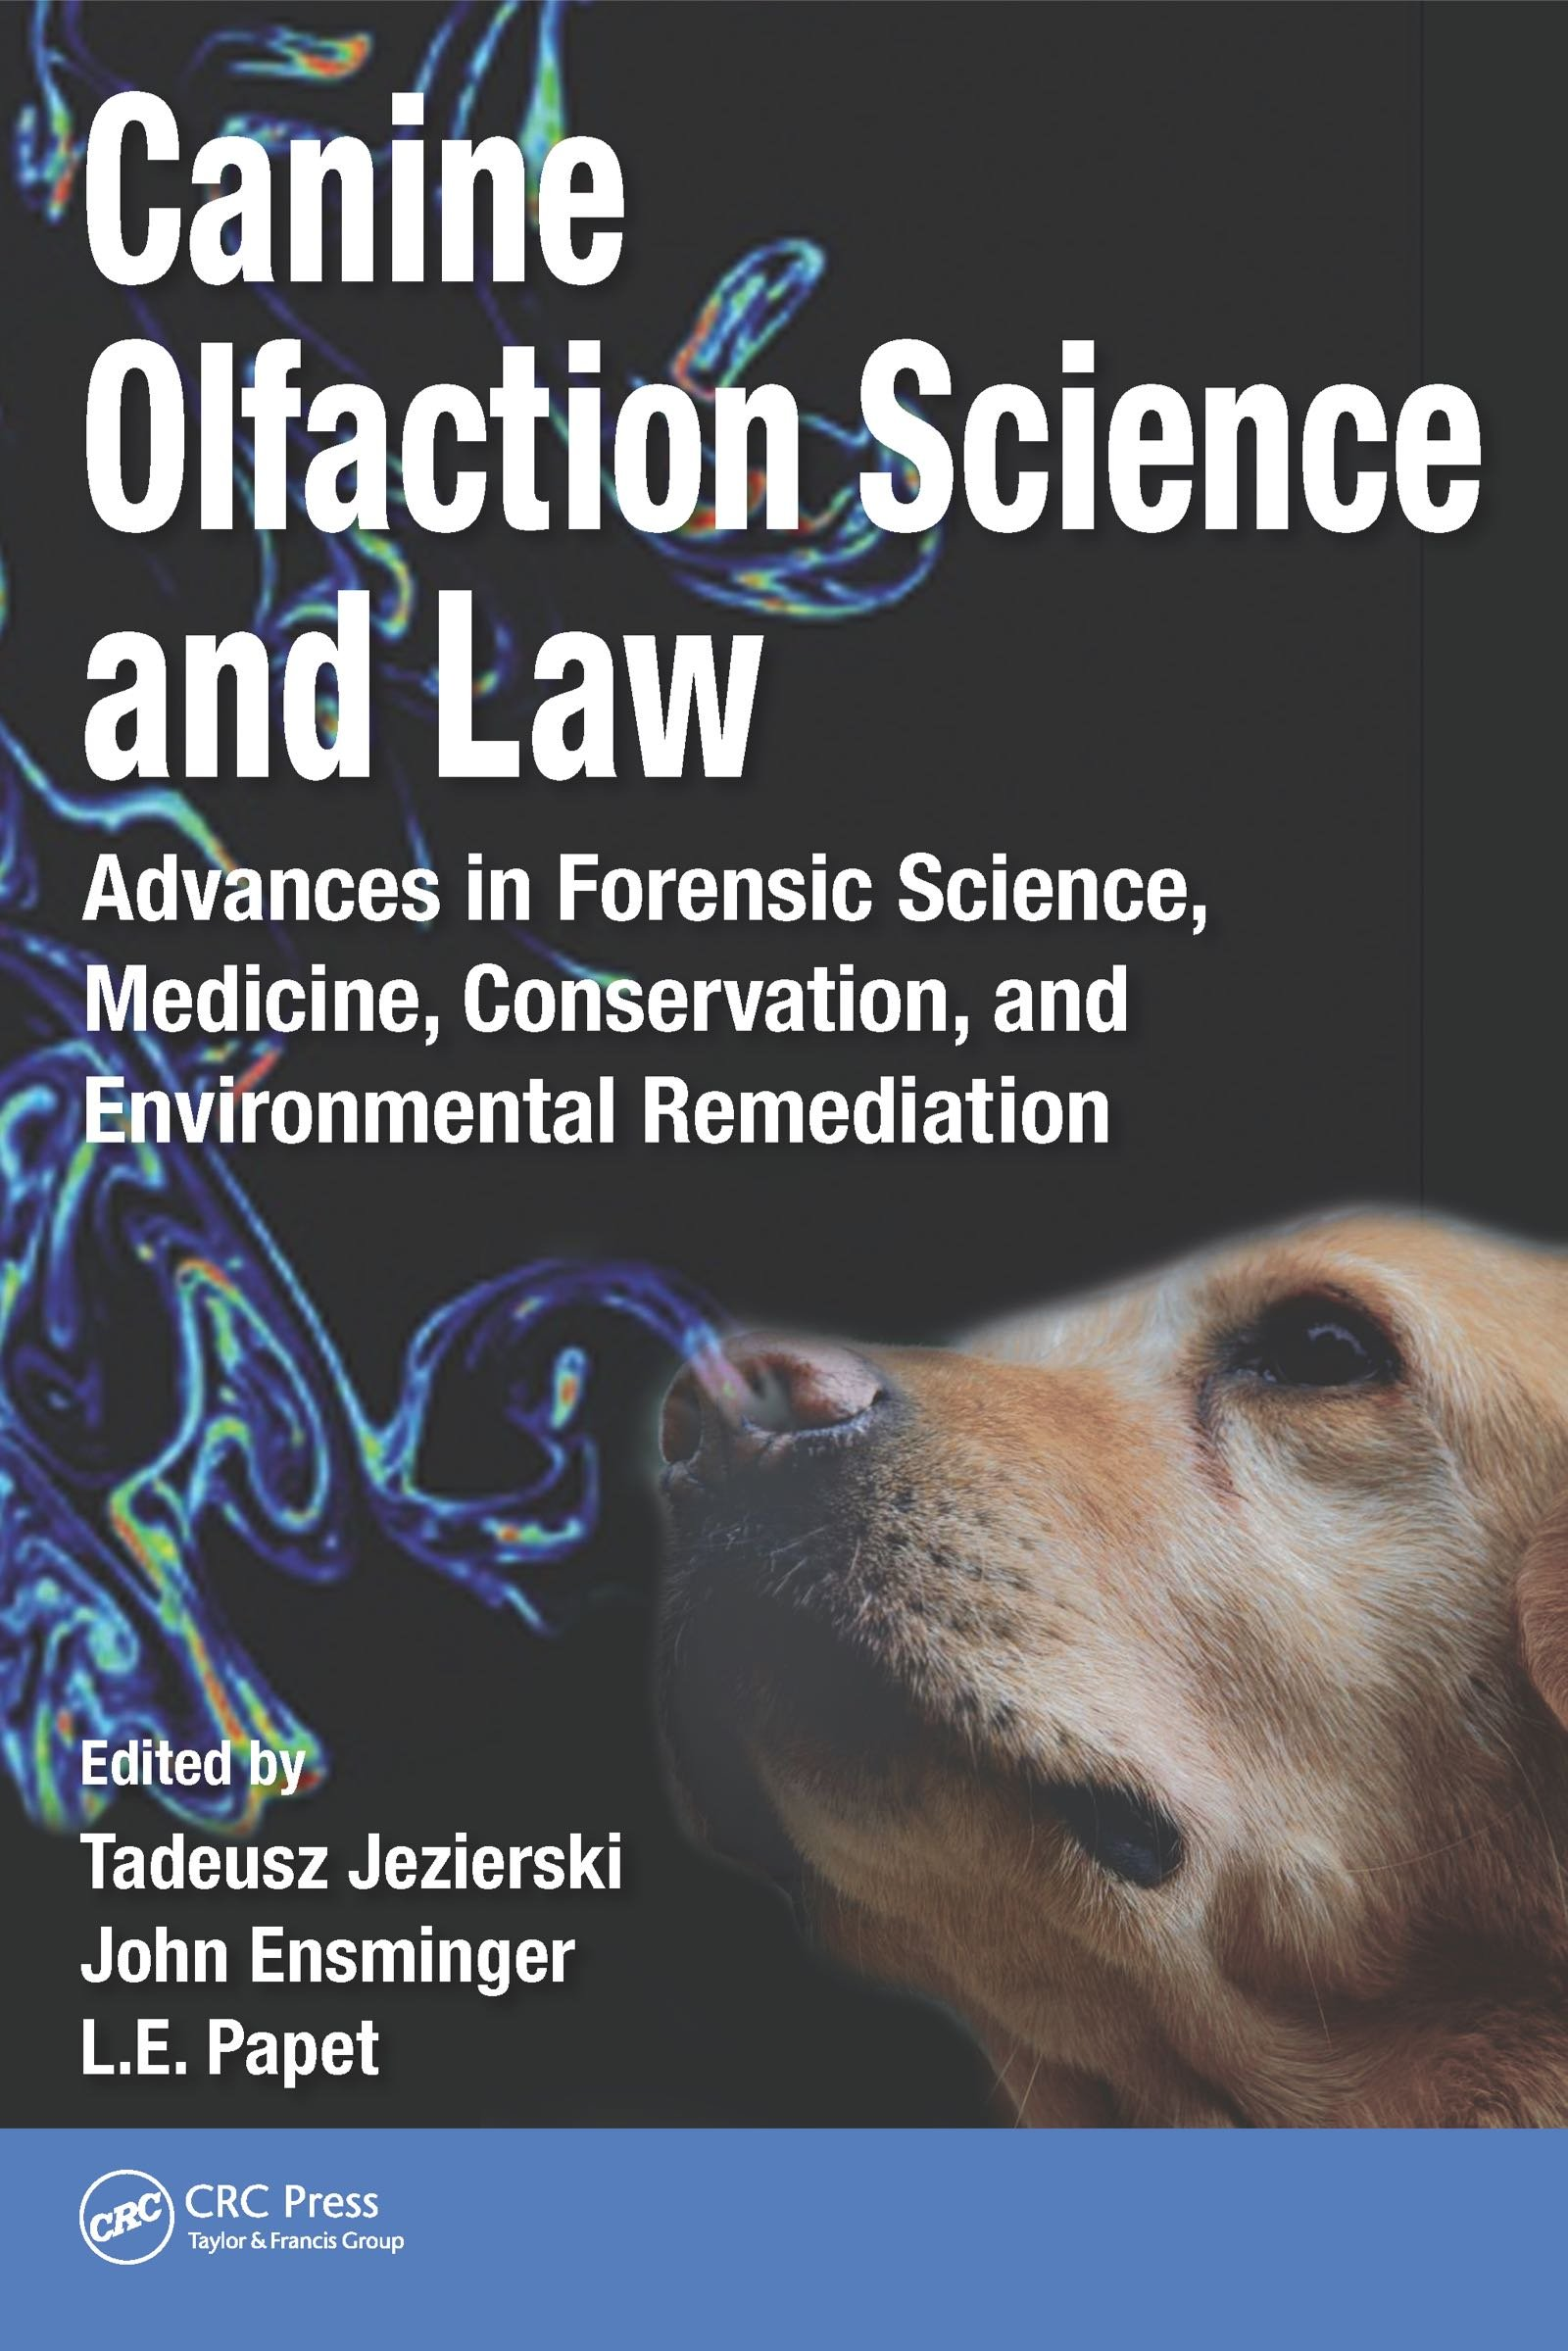 Download Canine Olfaction Science And Law: Advances In Forensic Science, Medicine, Conservation, And Environmental Remediation (Eng... 